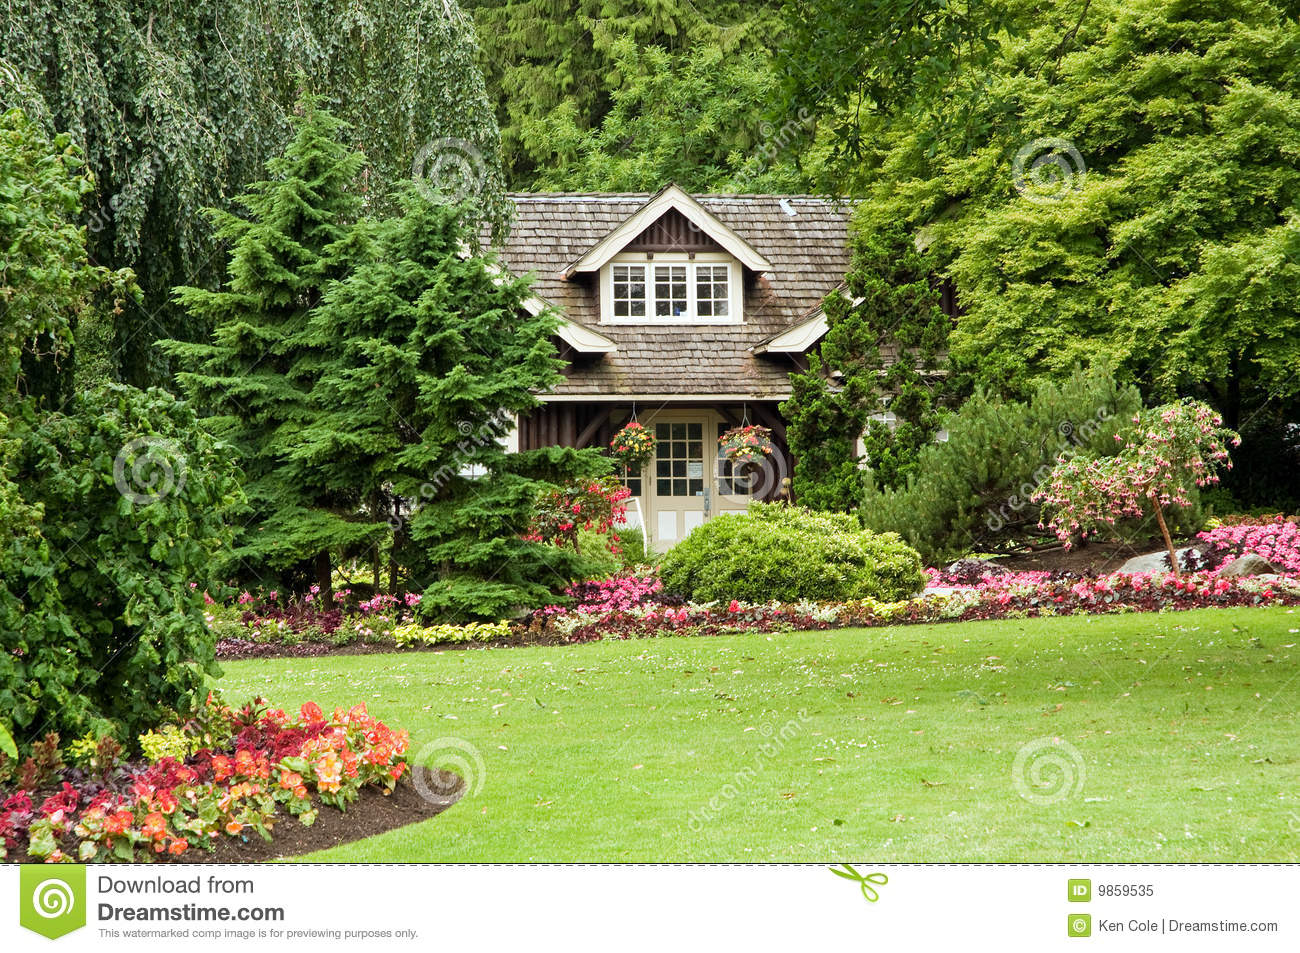 Landscaped Cottage In Woods A View Of Small Secluded Log The